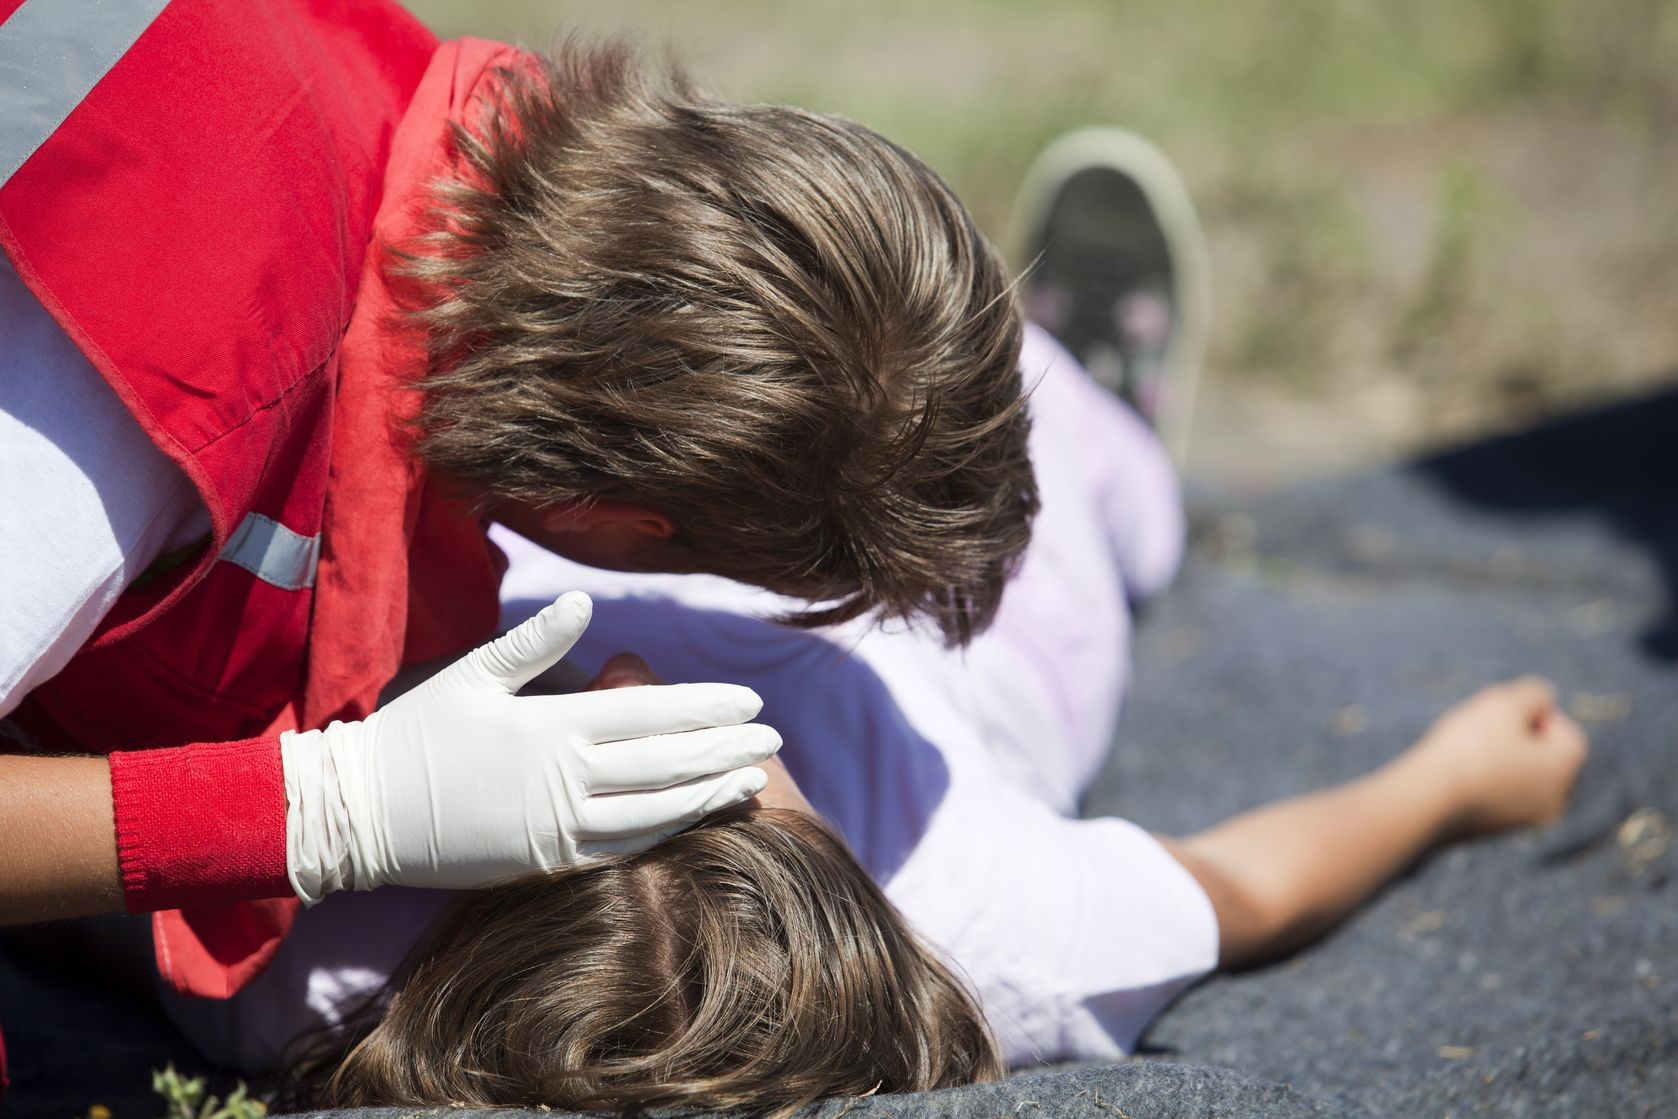 Cpr training and cpr certification qas cpr certification so weve taken some of your most common questions and listed their answers to save you making a phone call xflitez Images